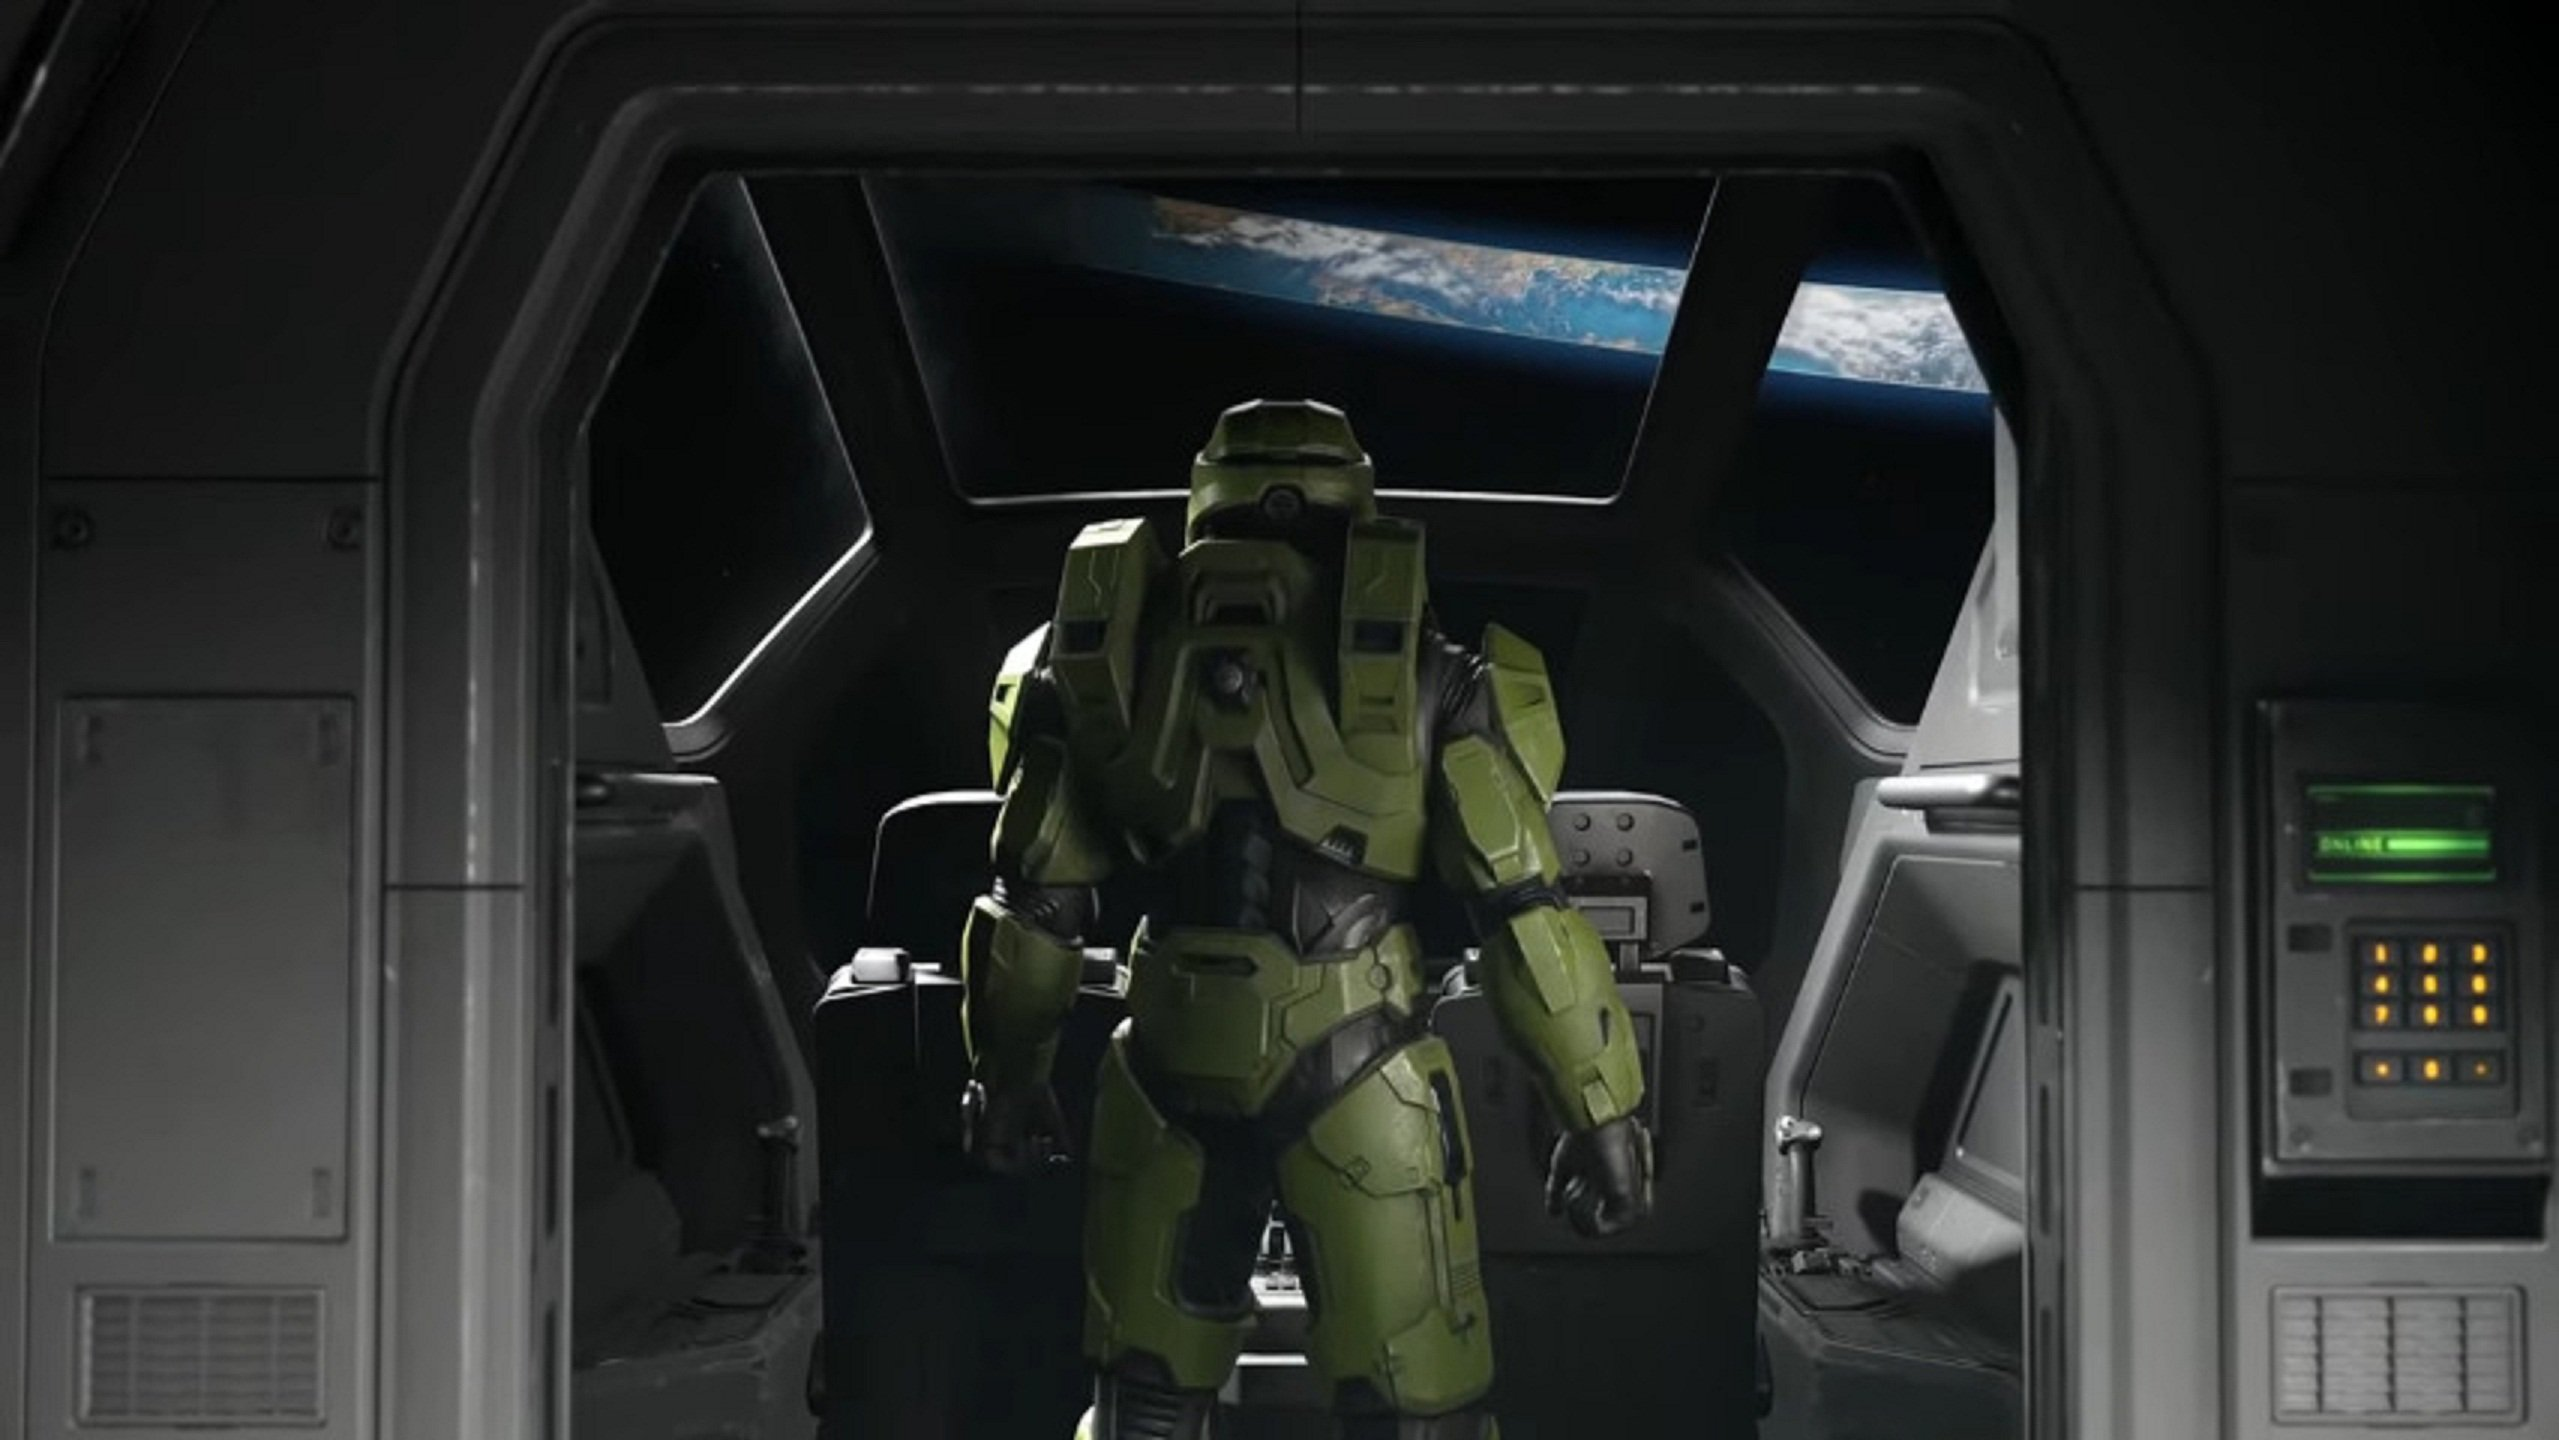 Halo Infinite Is Charging Microtransactions For Colors In Multiplayer, Some Are Frustrated